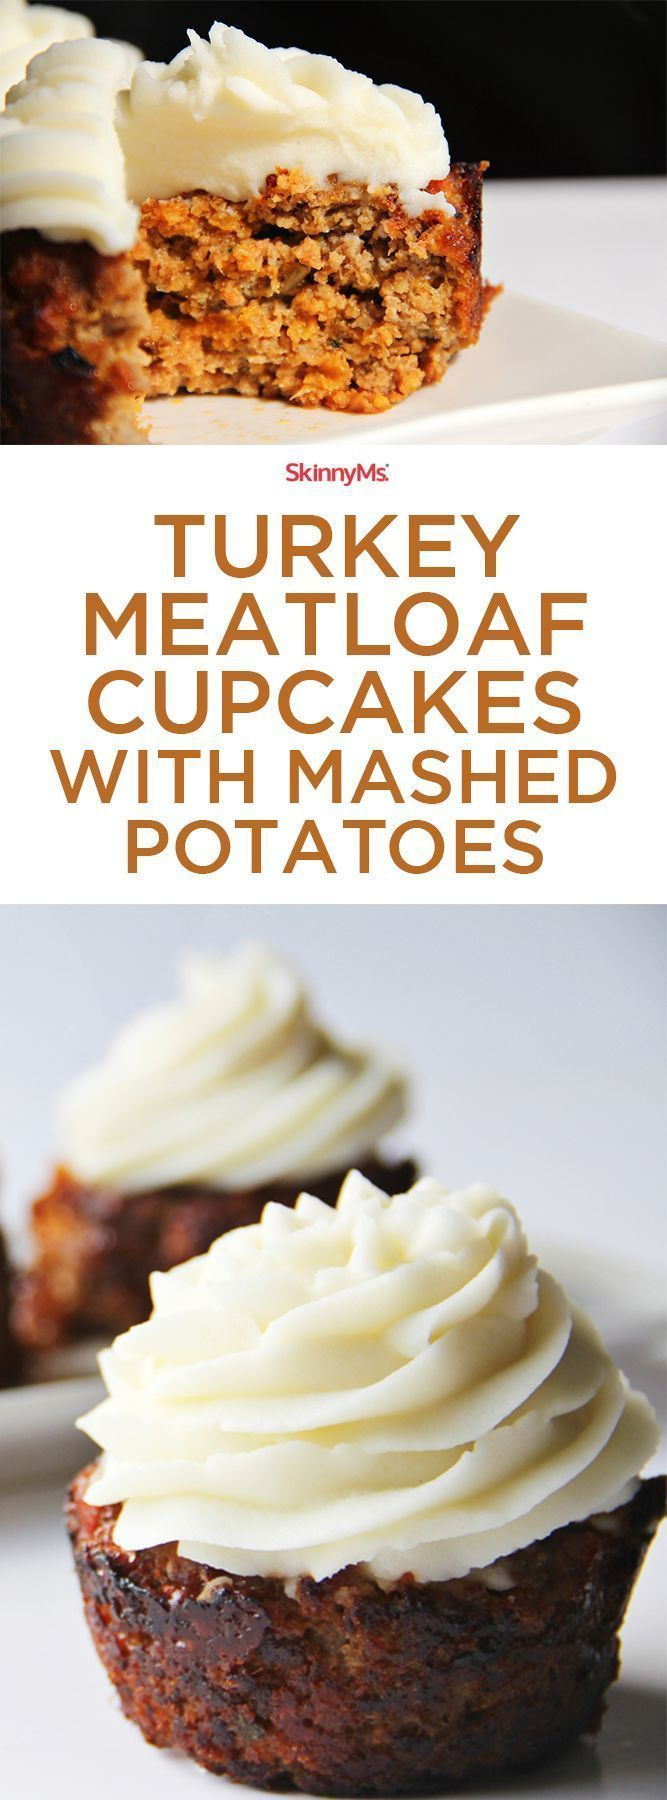 手机壳定制cheap mens socks Nutritious cupcakes for dinner You know it These Turkey Meatloaf Cupcakes with Mashed Potatoes are guaranteed to be a hit  cleaneating